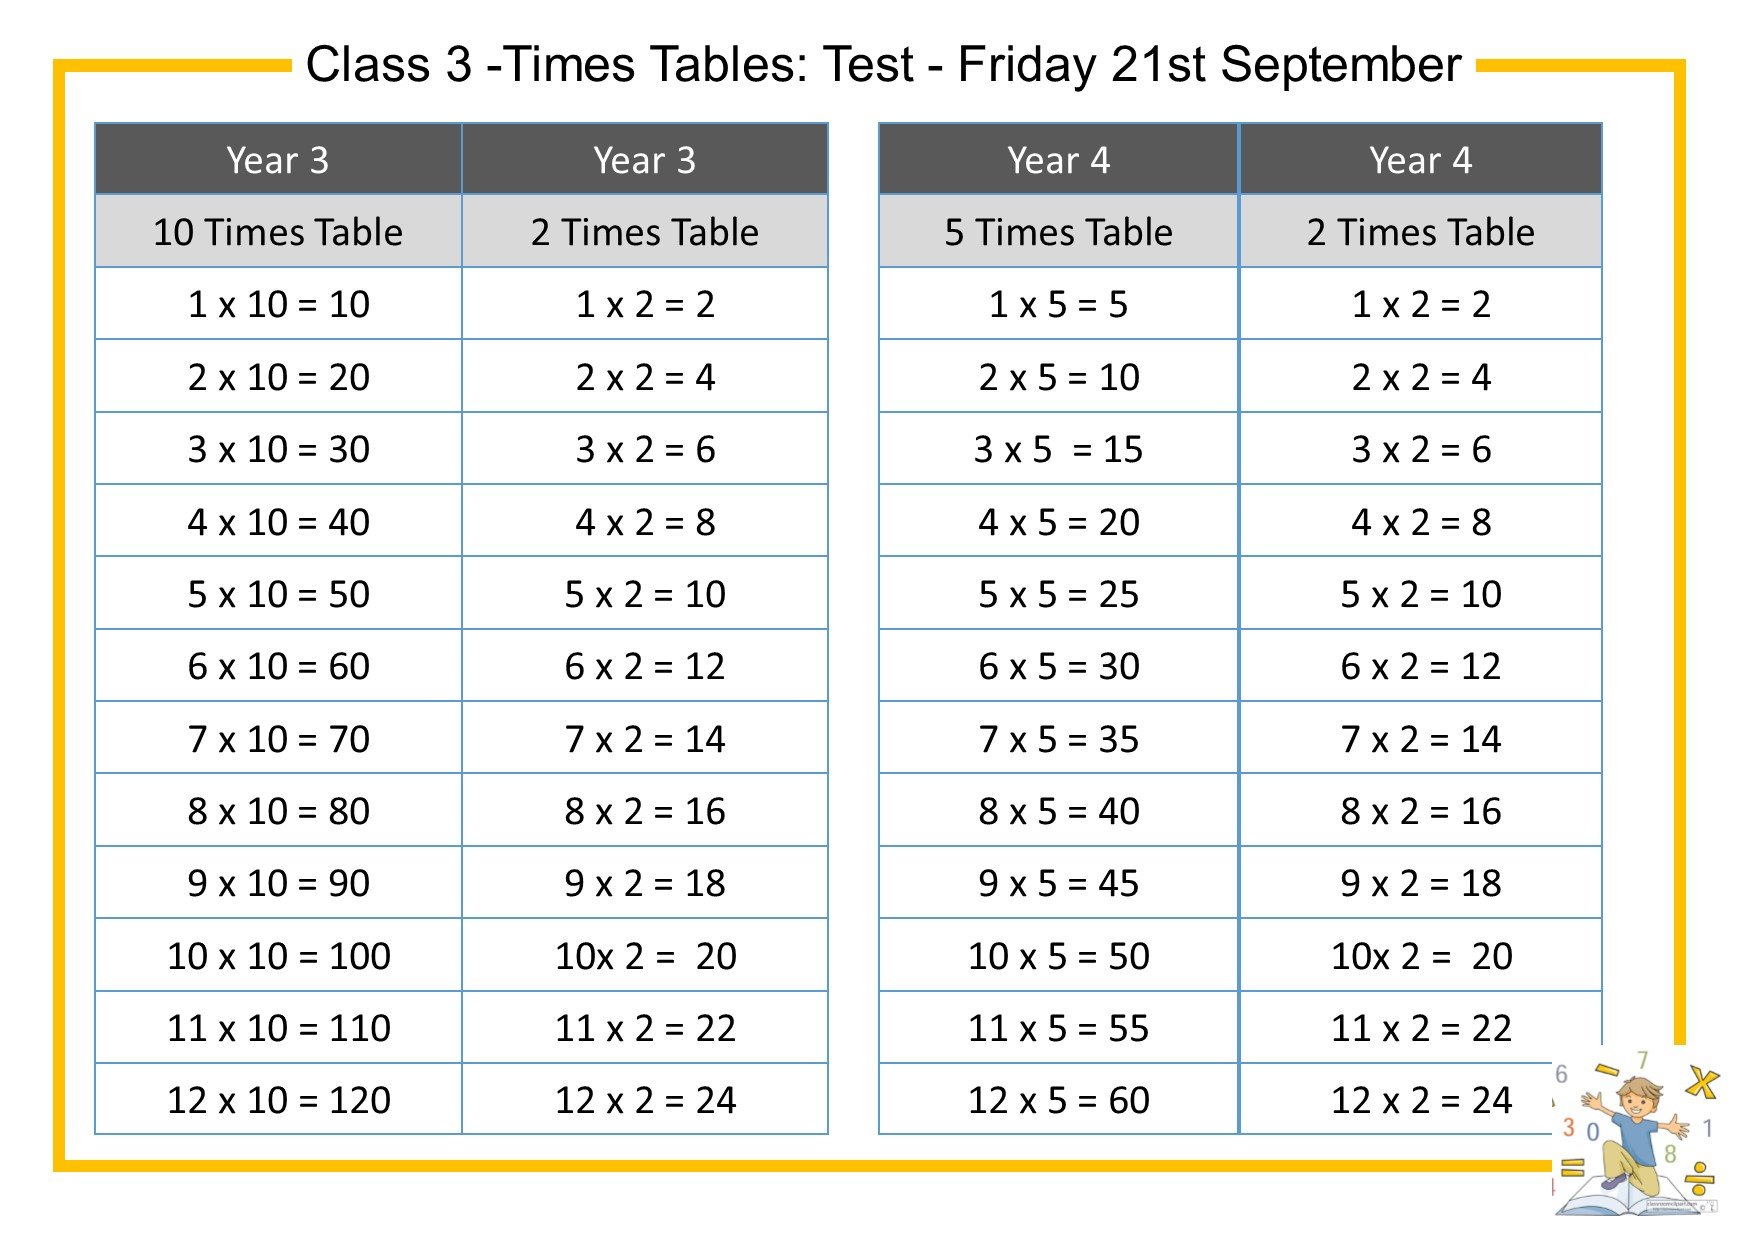 All Times Tables Test